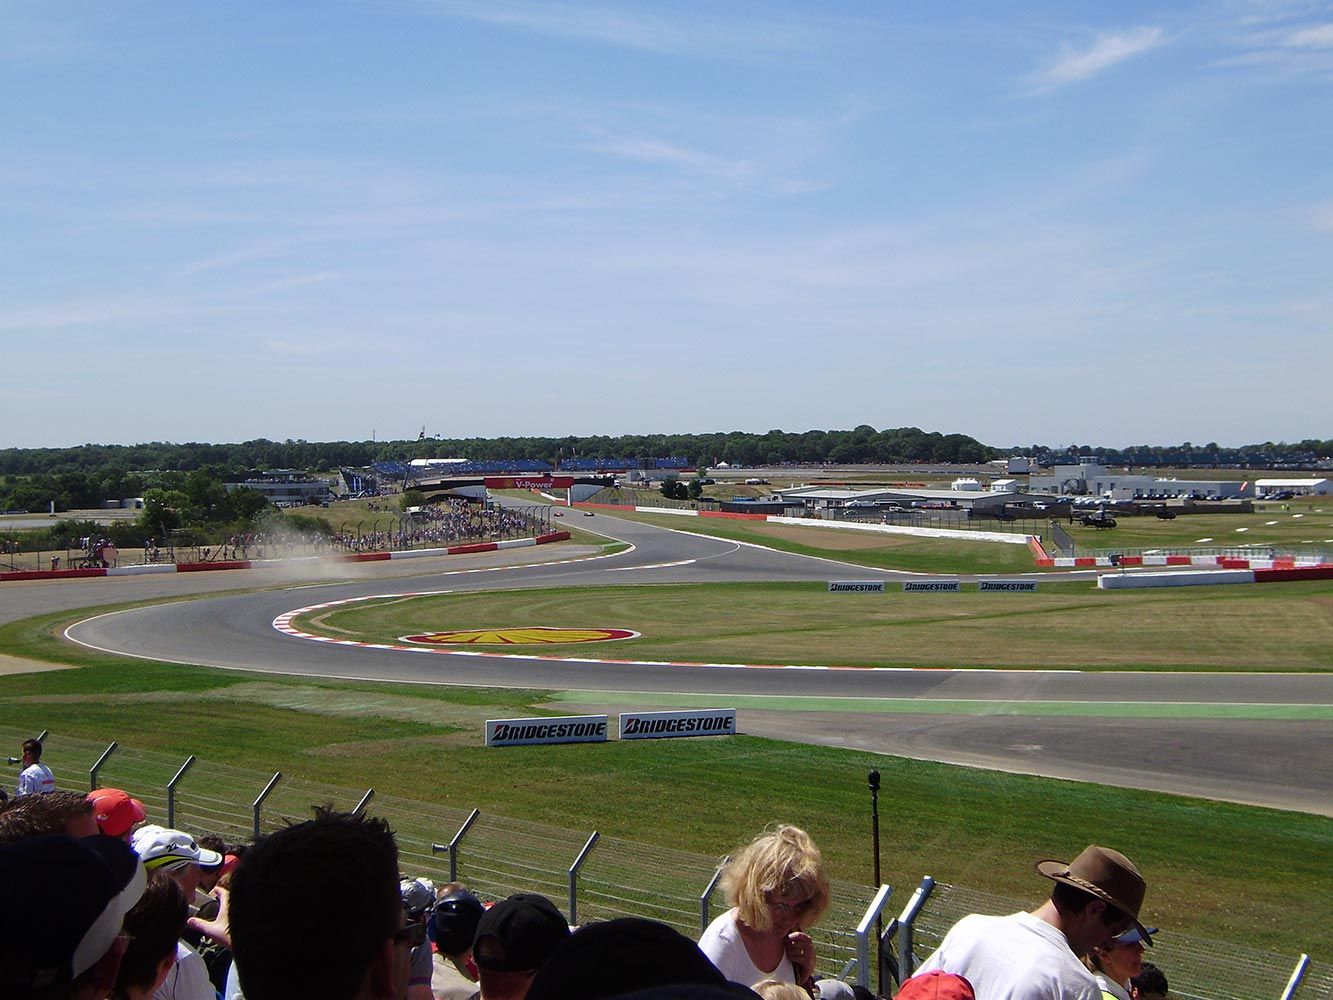 British Grand Prix Tickets - A buyers guide